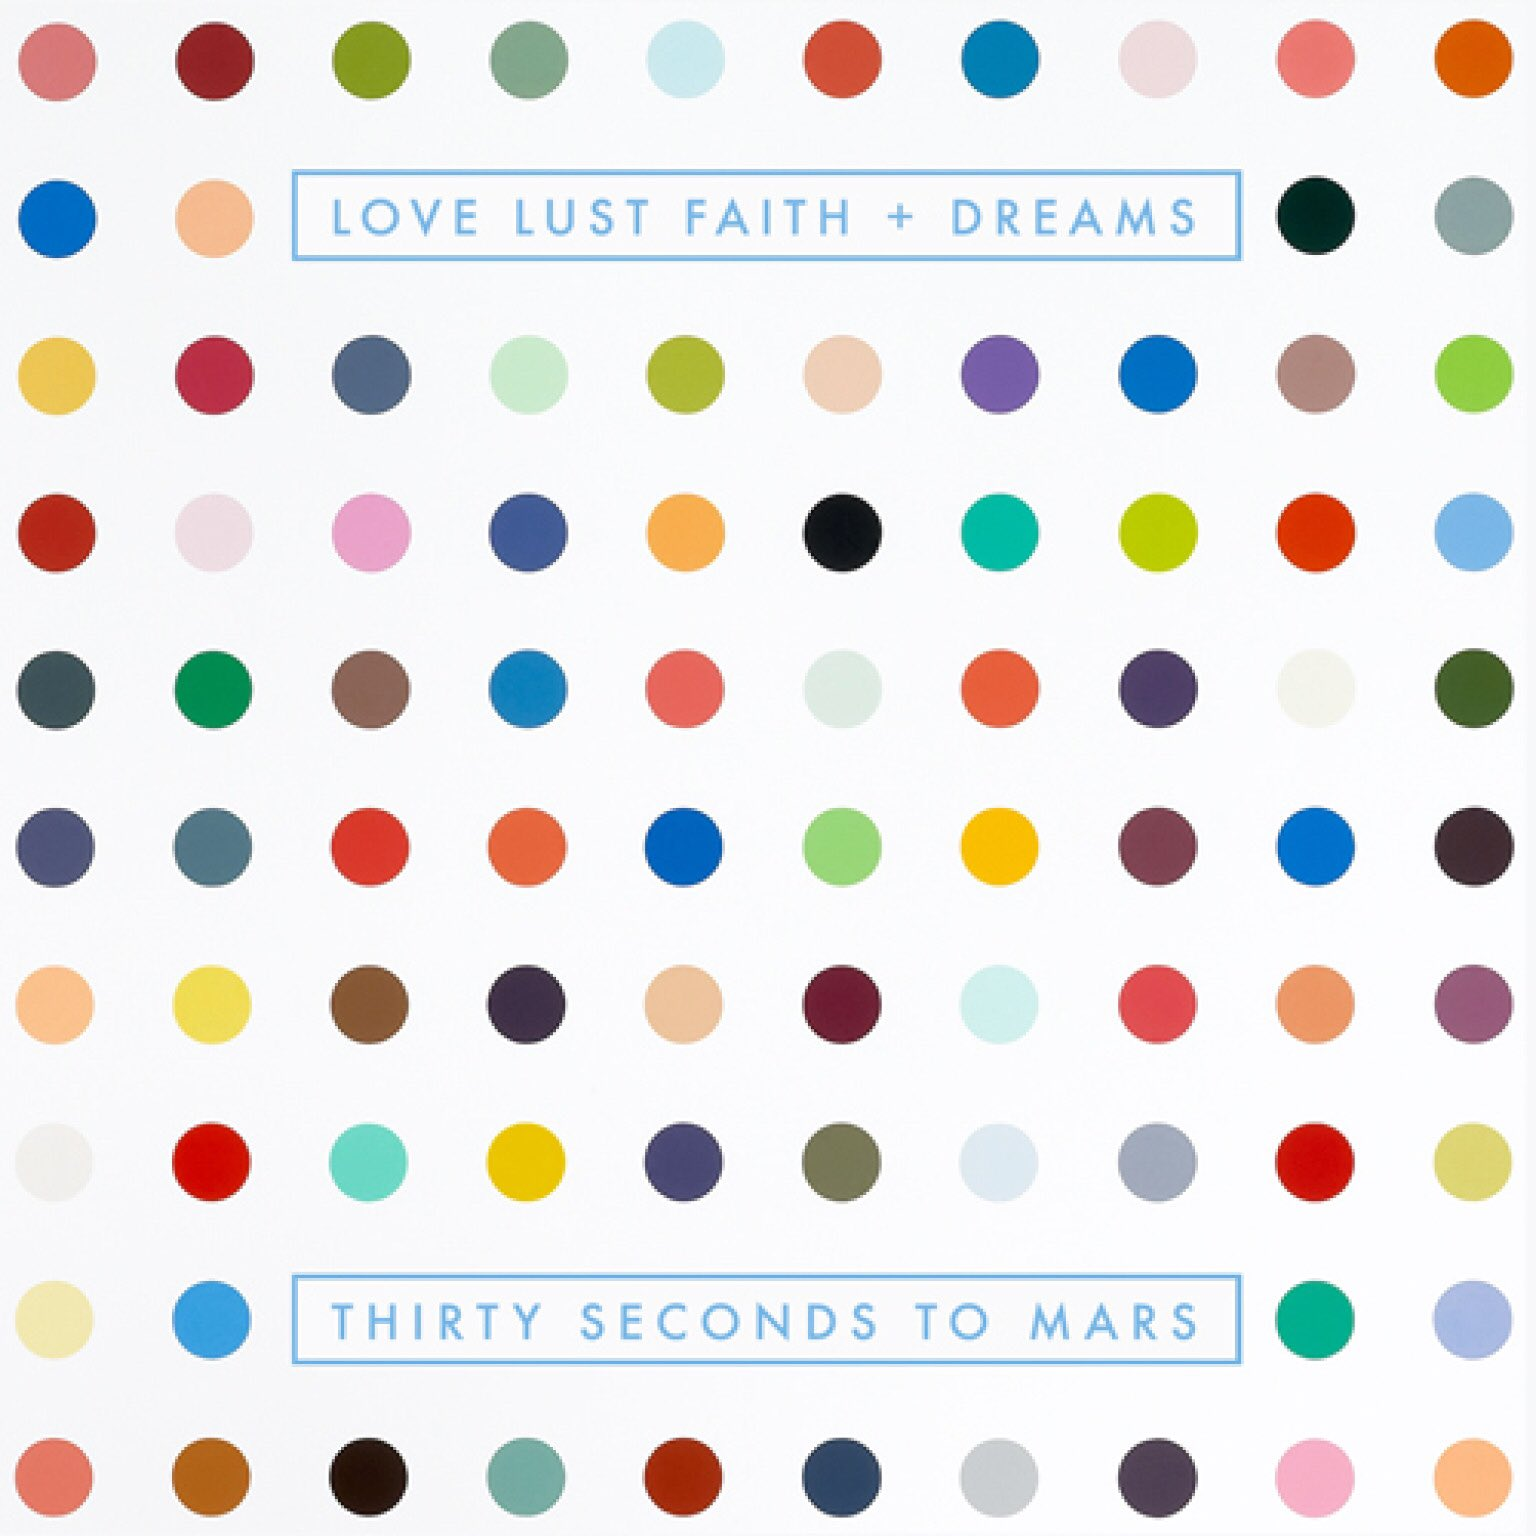 �� Released 5 years ago today. What's your favorite song off of #LoveLustFaithDreams?   https://t.co/GNv749Capg https://t.co/wEWYCeYNmu